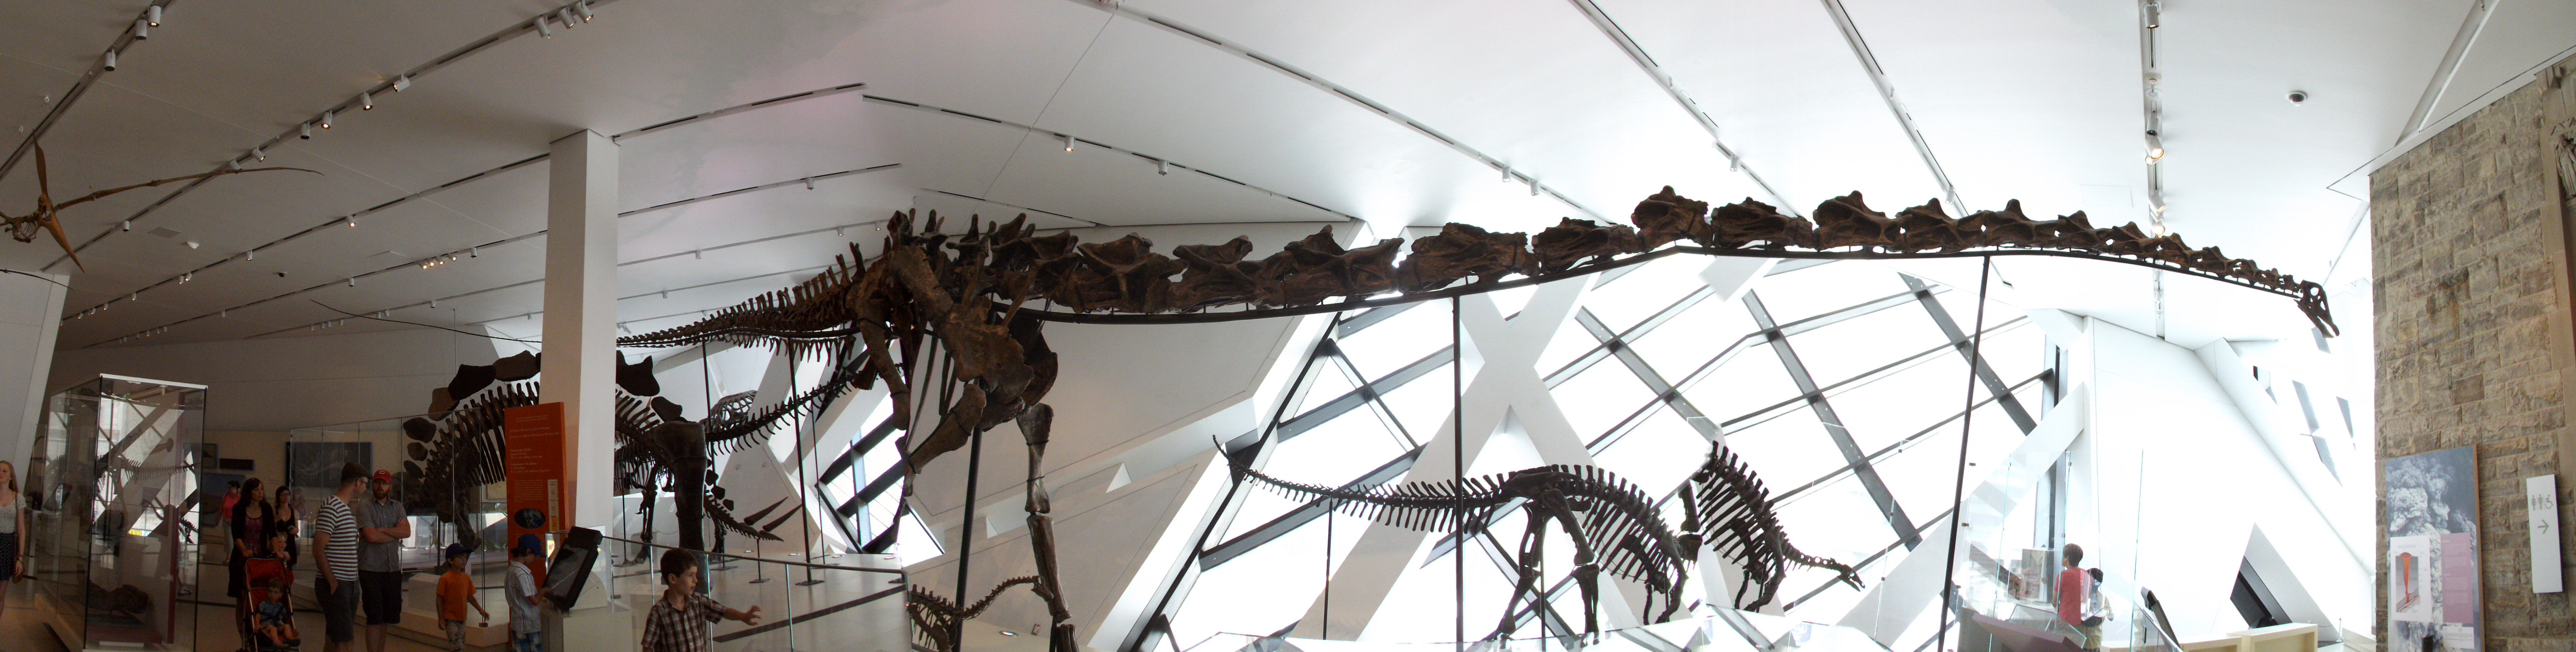 Gordo the Barosaurus, Royal Ontario Museum